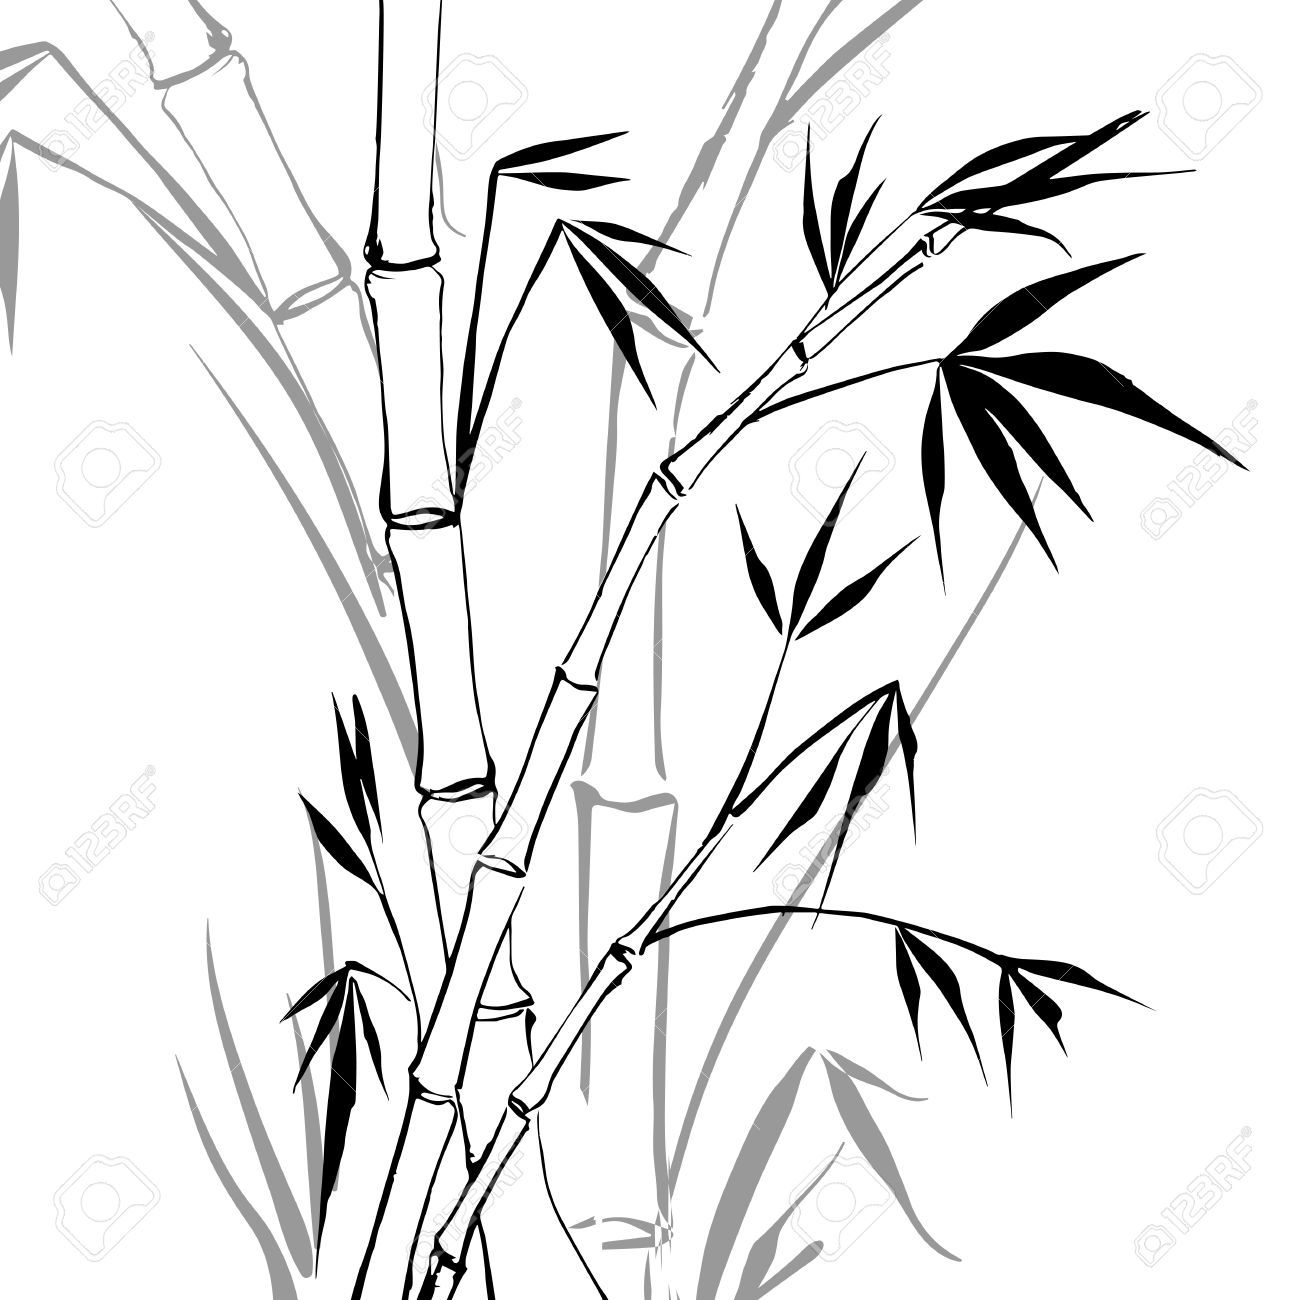 how to draw bamboo leaves how to draw a bamboo step by step drawing tutorials draw how bamboo to leaves